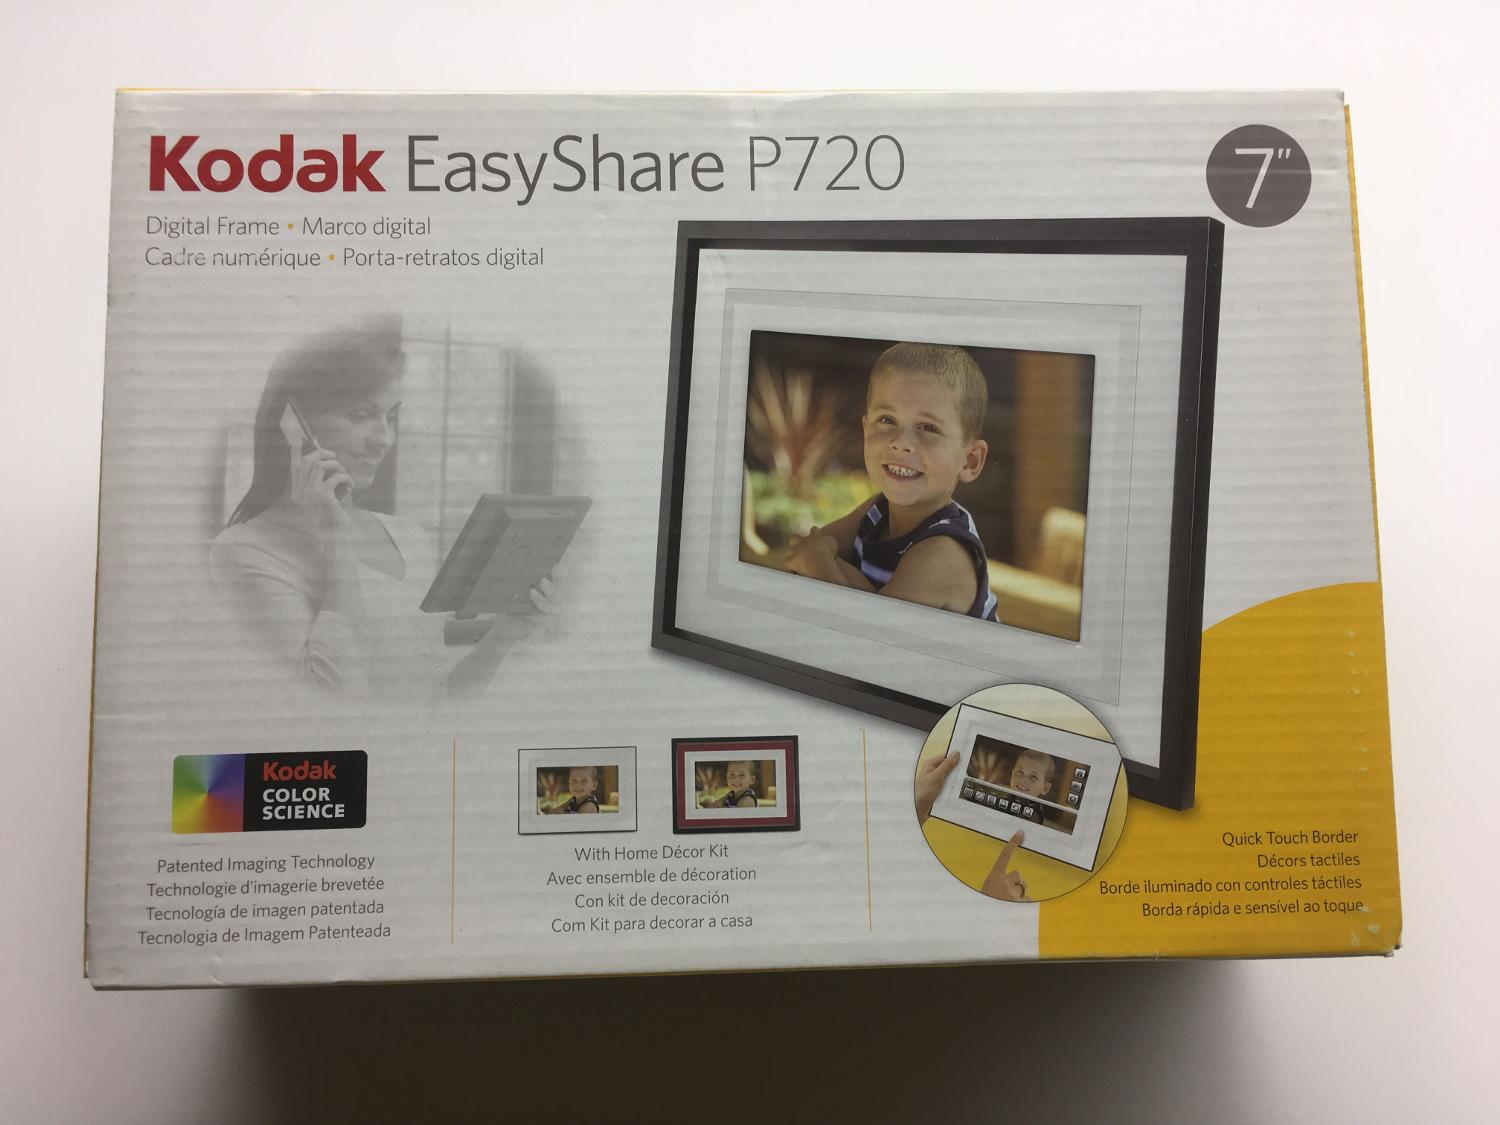 Best Bnib Kodak Easyshare P720 Digital Photo Frame for sale in ...